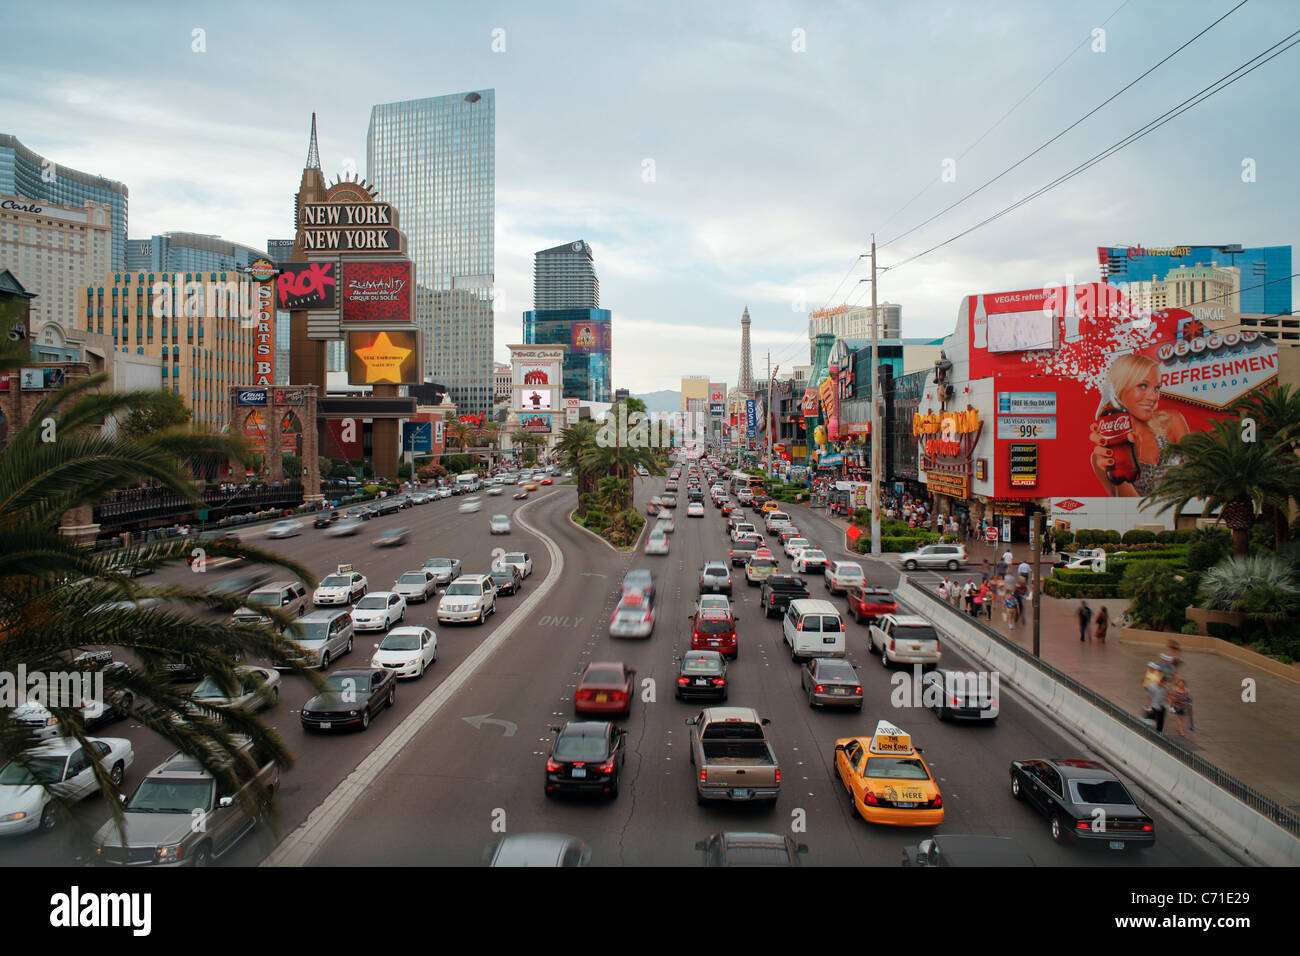 United States of America, Nevada, Las Vegas, Hotels and Casinos along the Strip - Stock Image